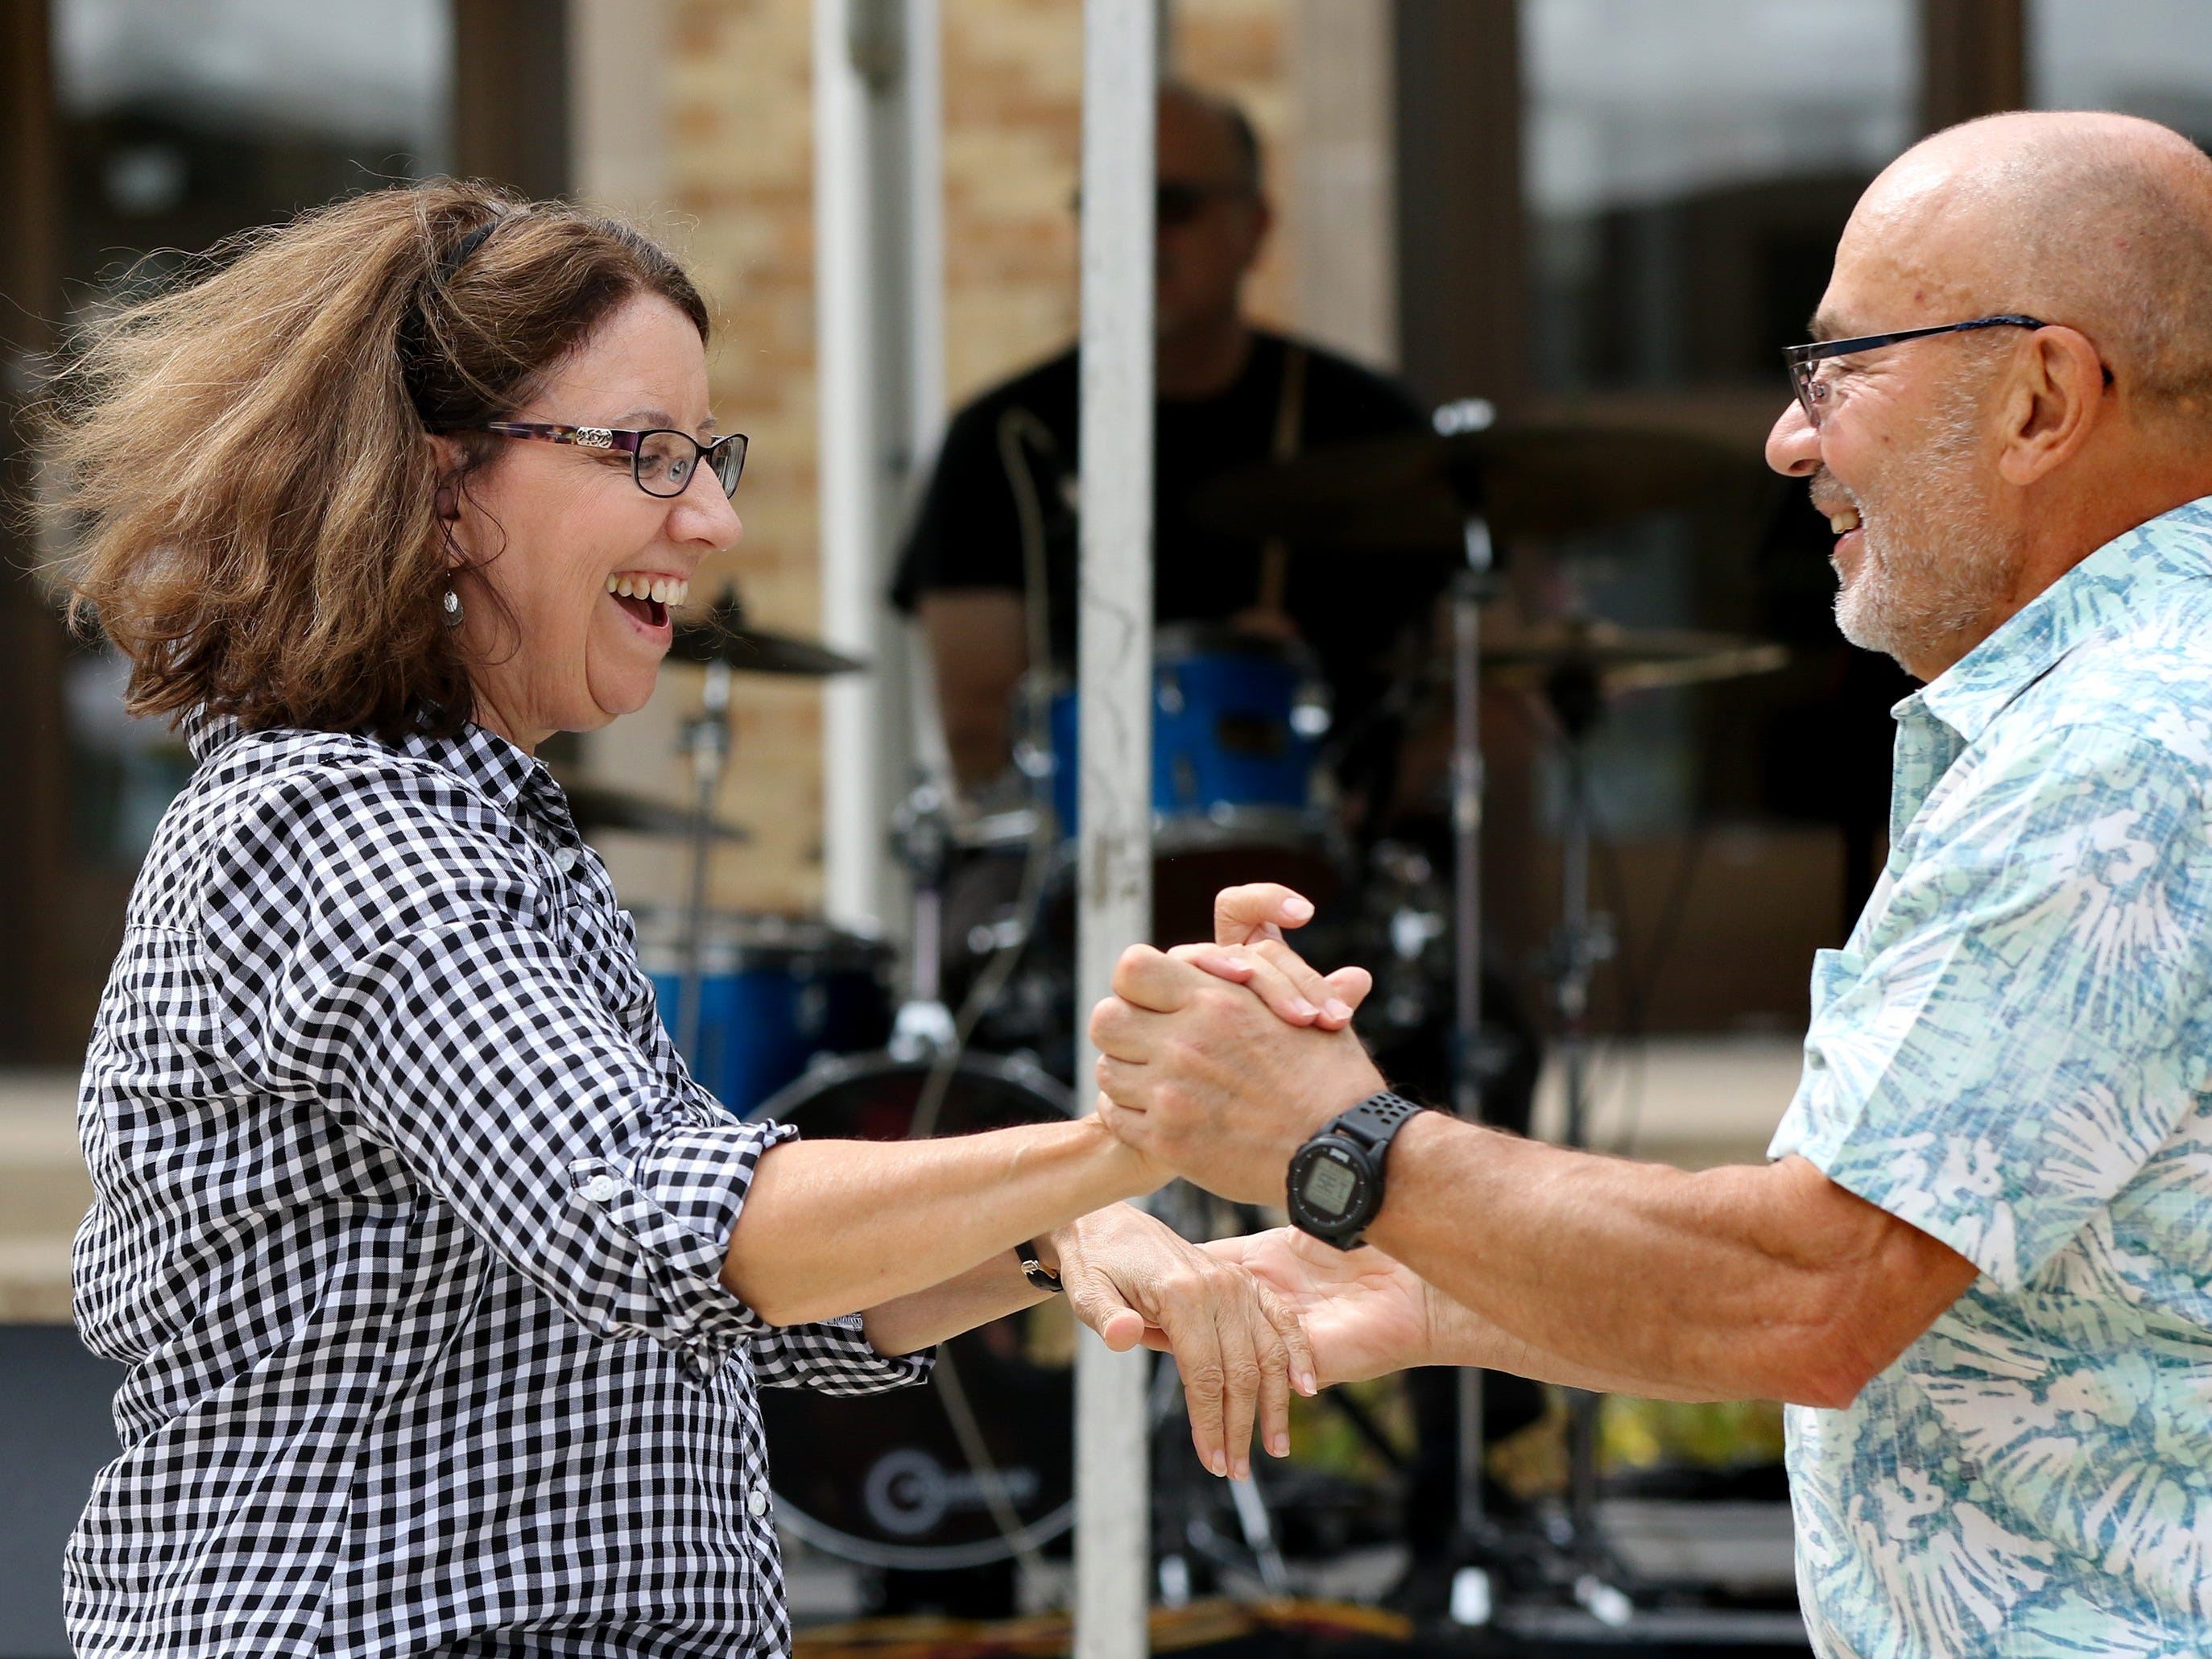 LuAnne Salmon and James Aveni dance to the sounds of the Danny Miller Band during the sixth annual Taste of Mequon in the vicinity of City Hall and on Cedarburg Road on Sept. 8.